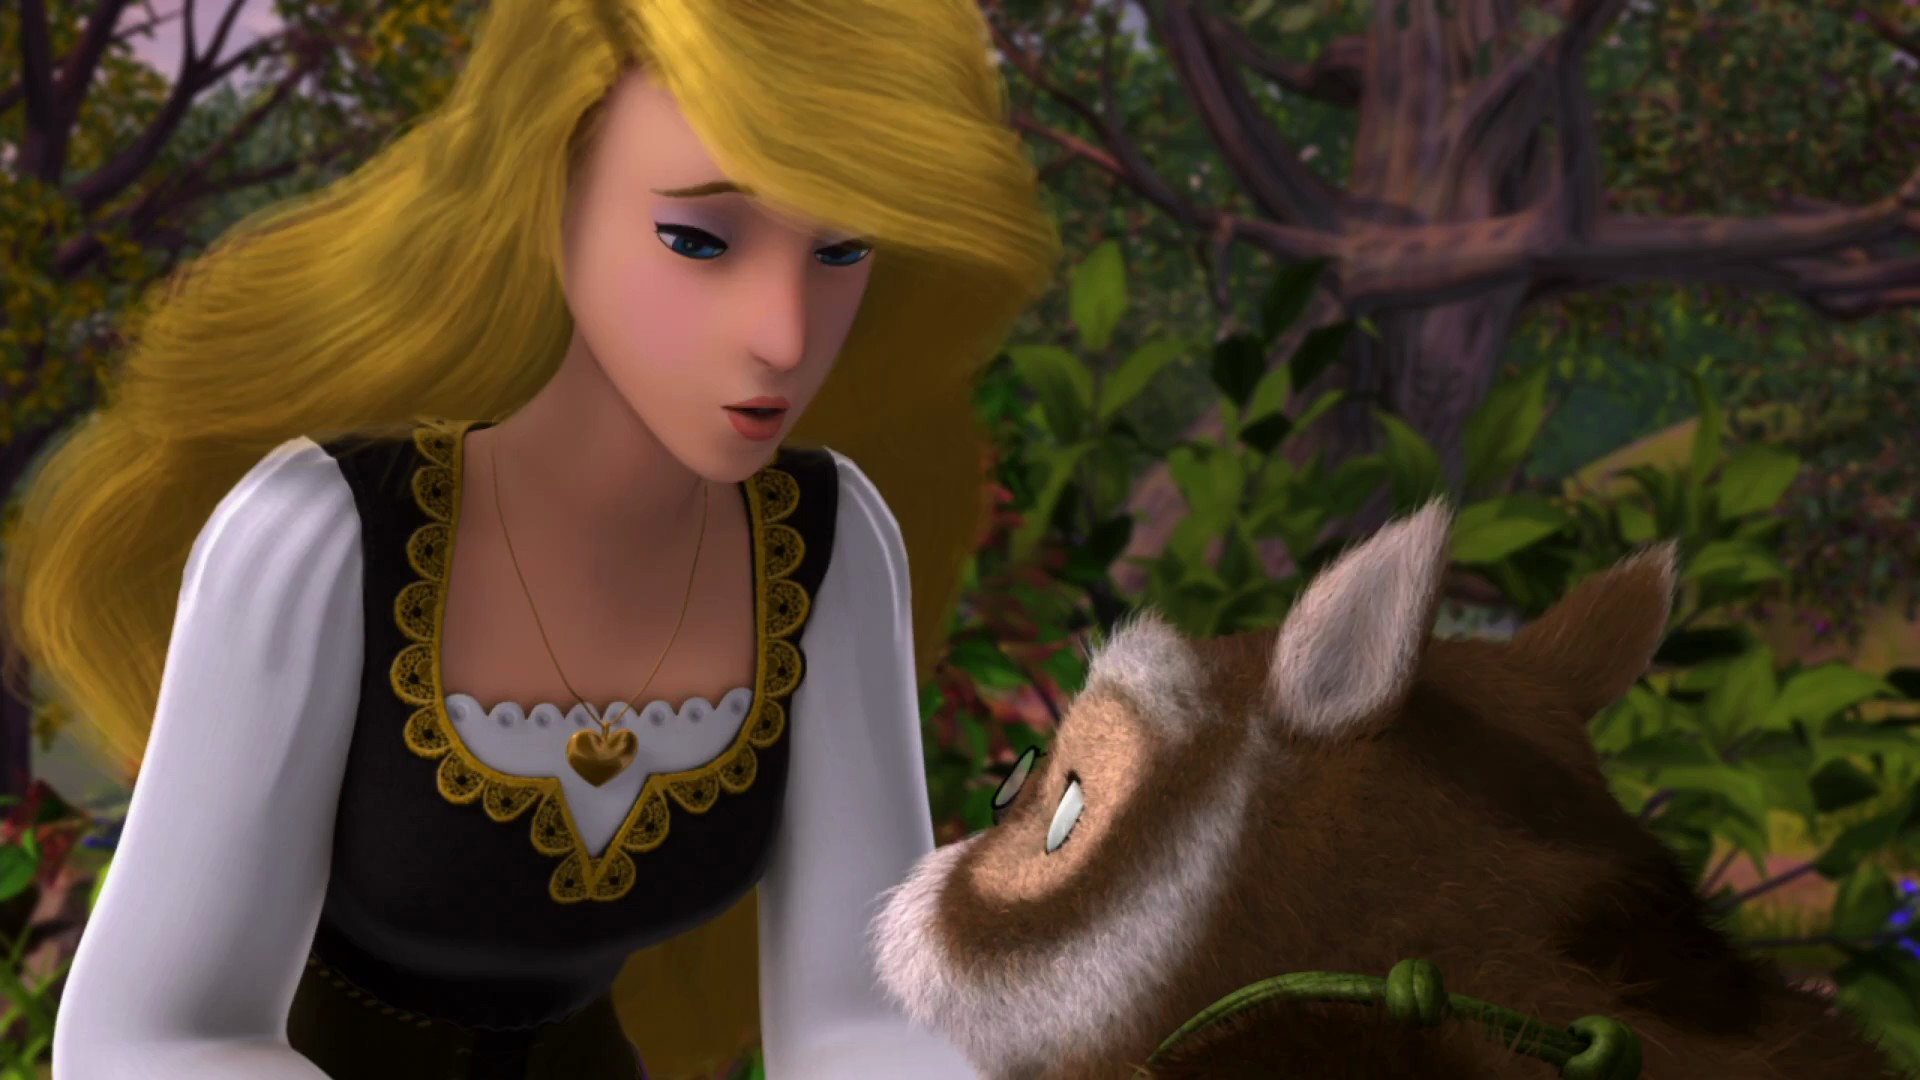 Odette with a nice Scullion The Swan Princess: A Royal Family Tale picture image